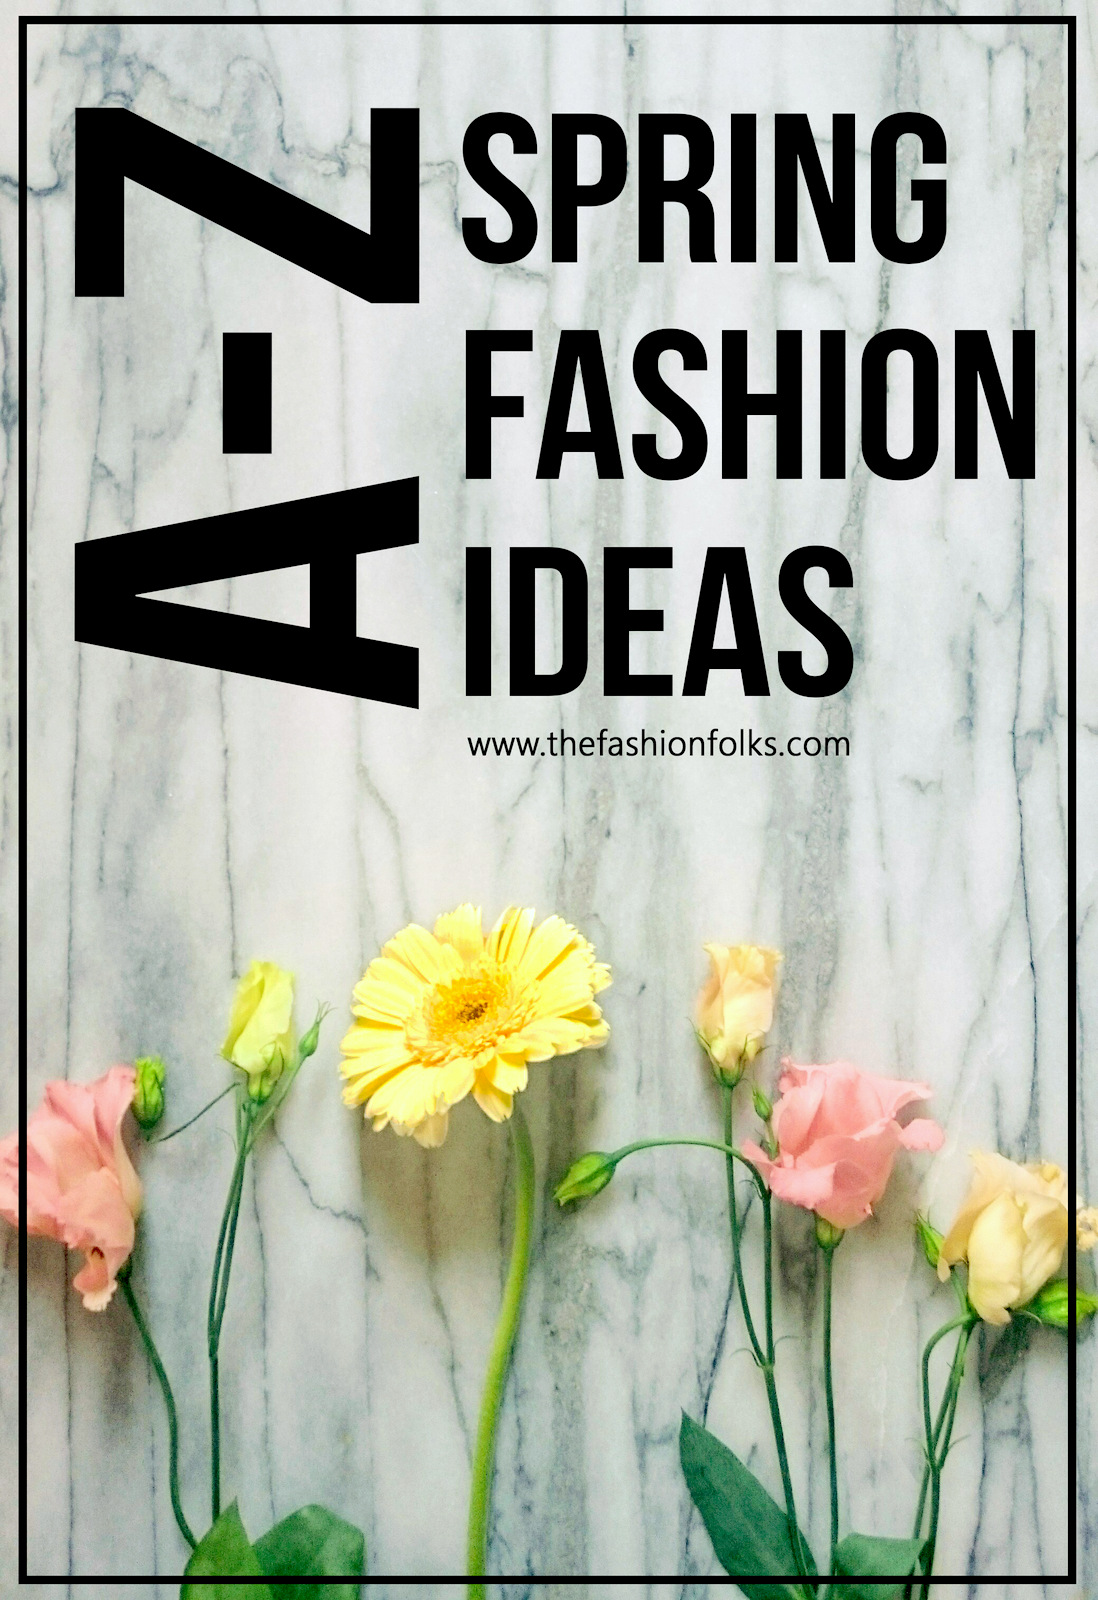 Spring Fashion A-Z Ideas 2017 + Spring Trends 2017 | The Fashion Folks